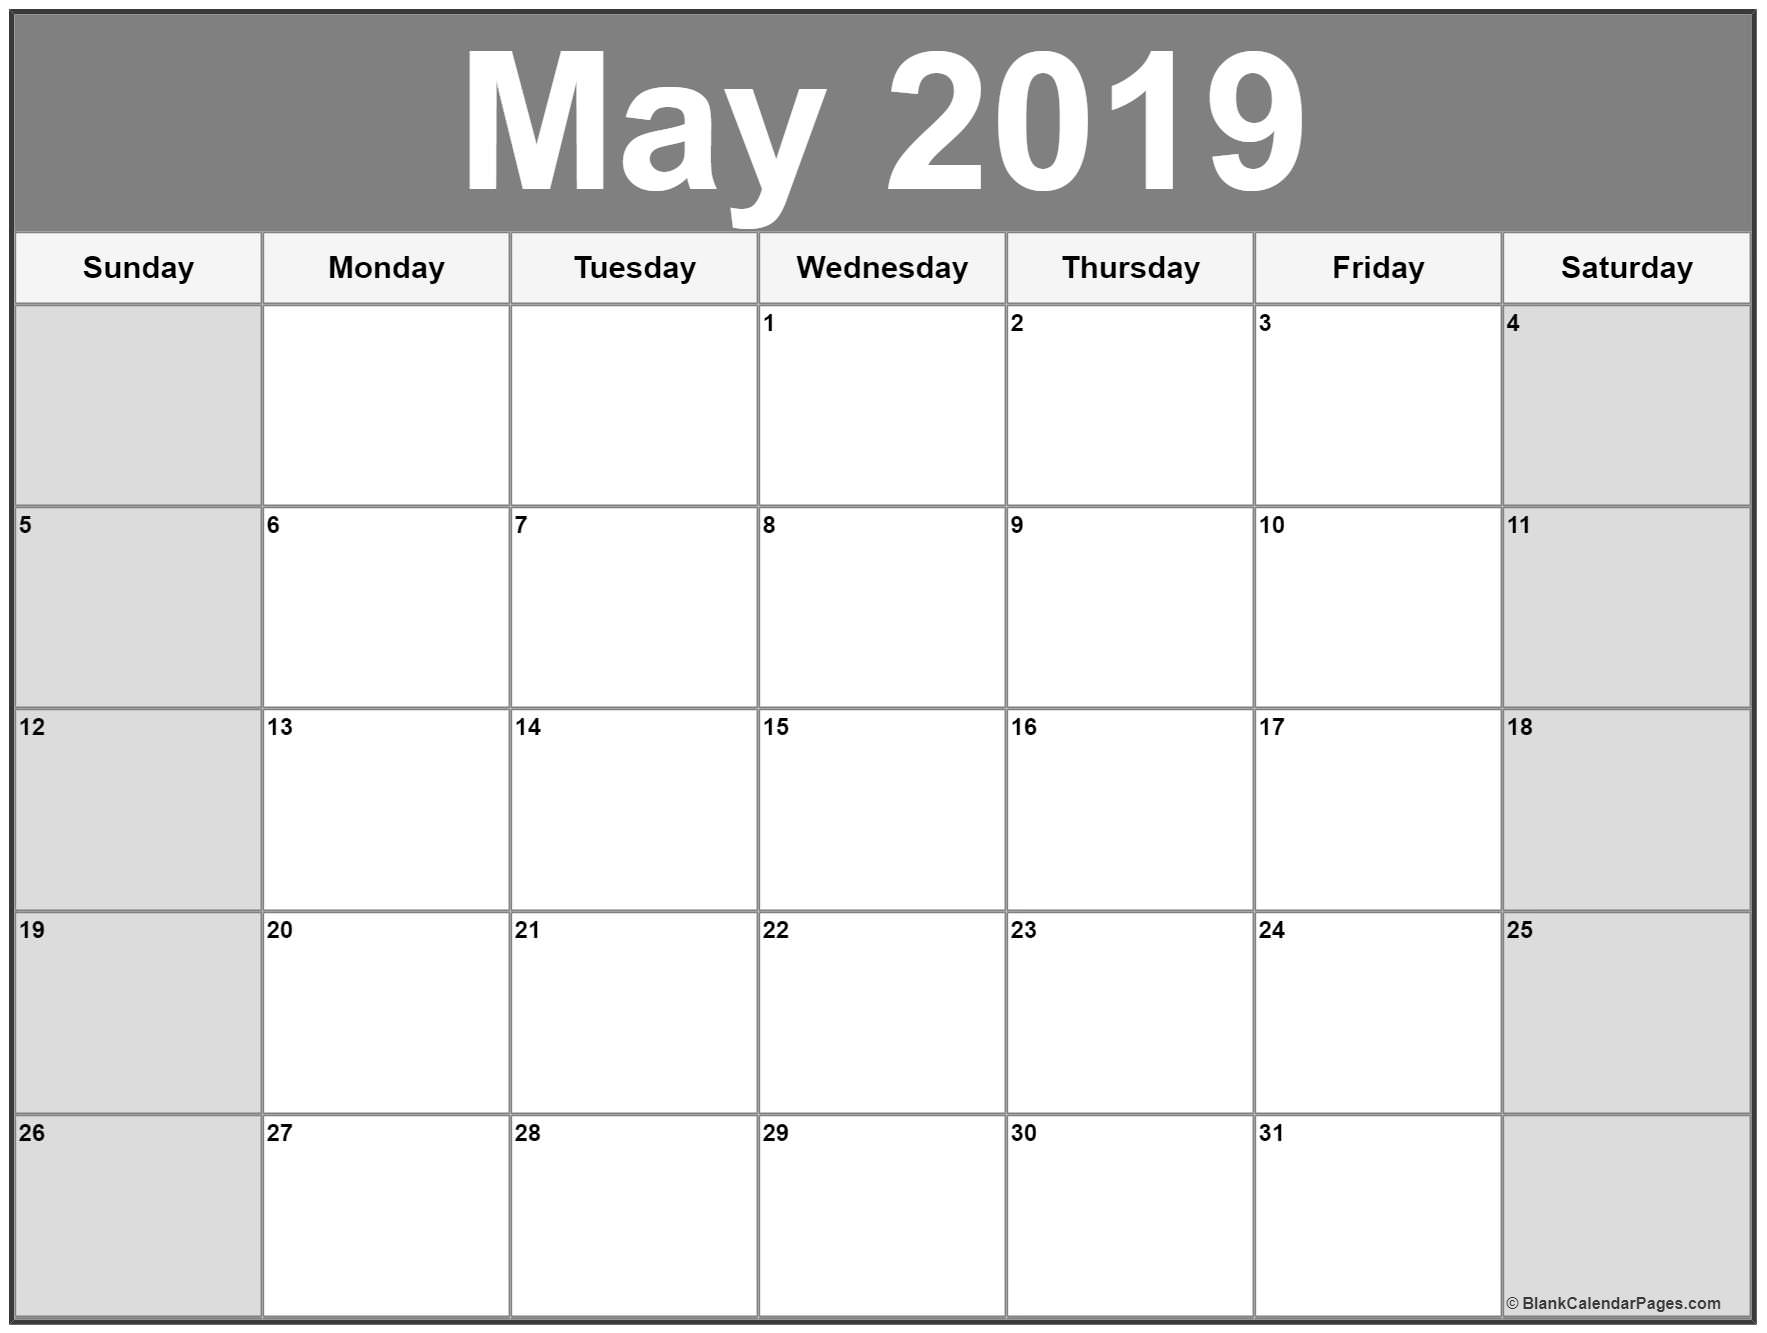 may 2019 calendar 51 calendar templates of 2019 calendars::May 2019 Calendar Example